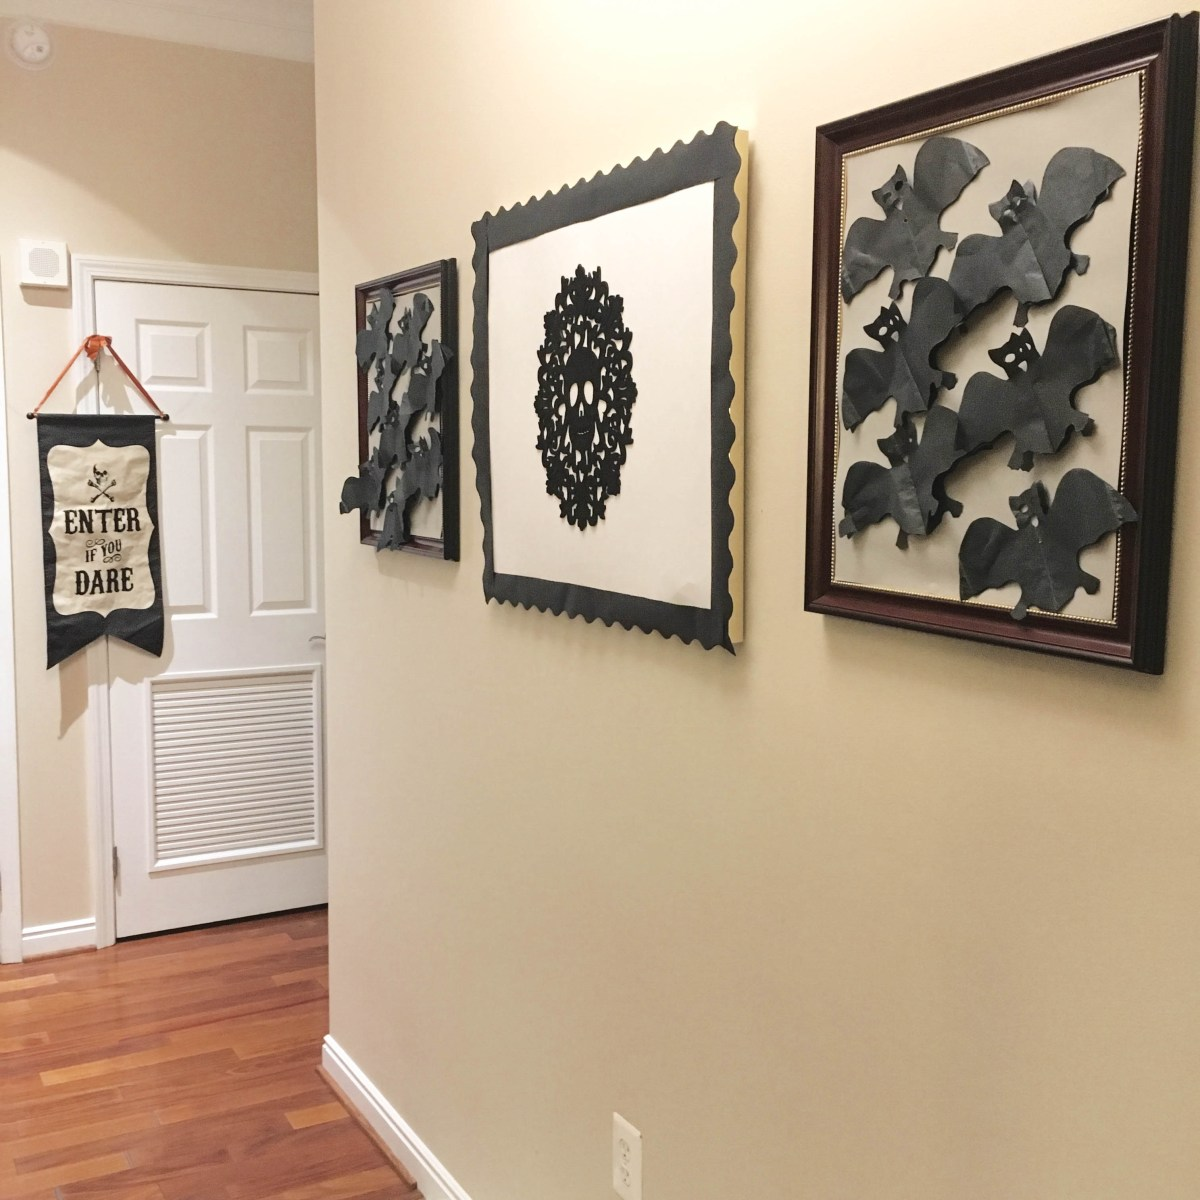 Paper bats flutter on two framed paper pieces, while a skull design is highlighted in the center.